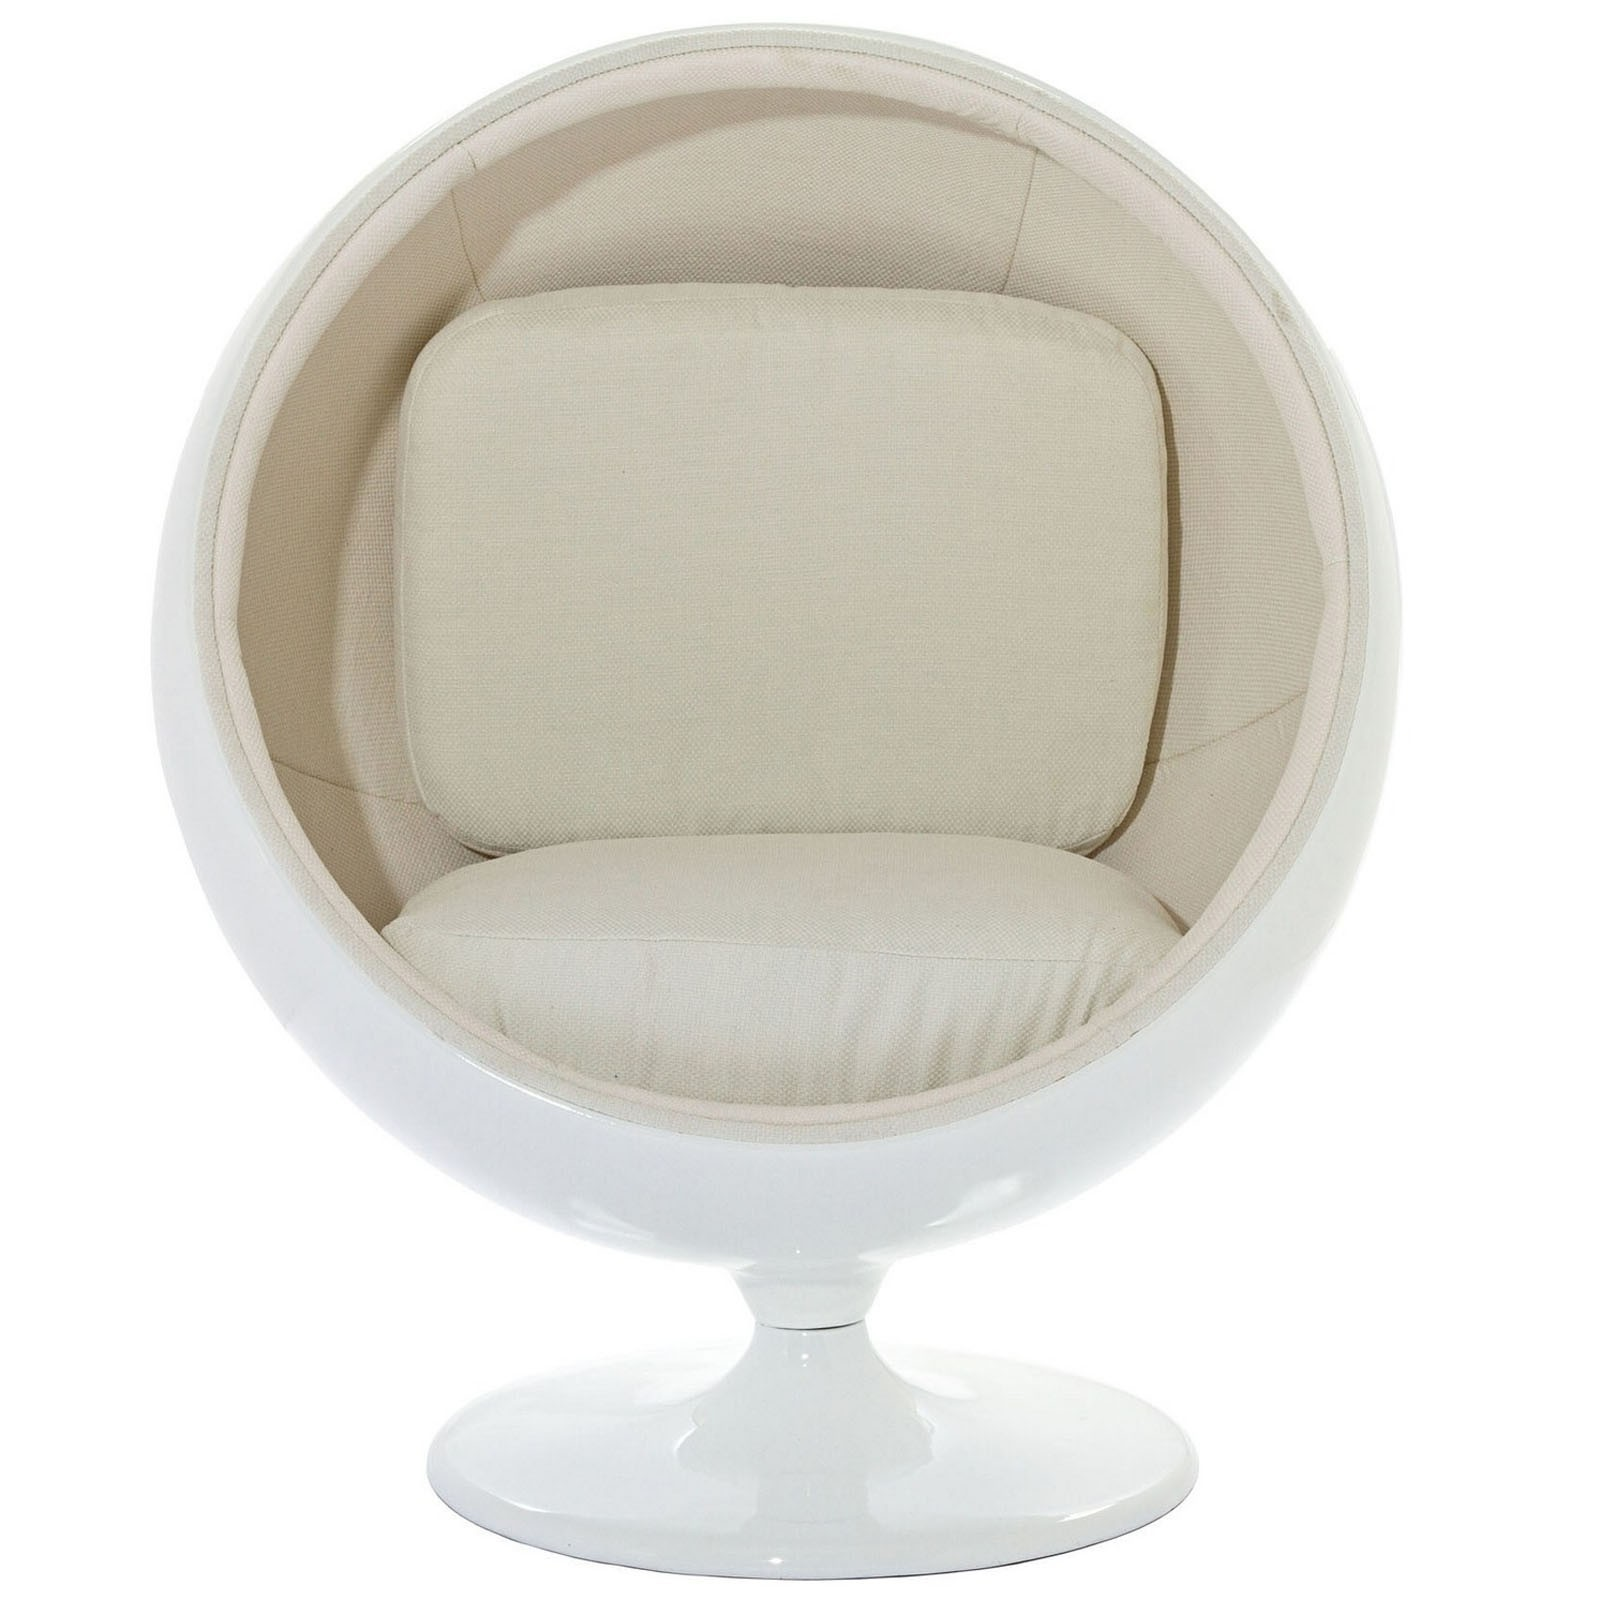 LexMod Eero Aarnio Style Ball Chair In White